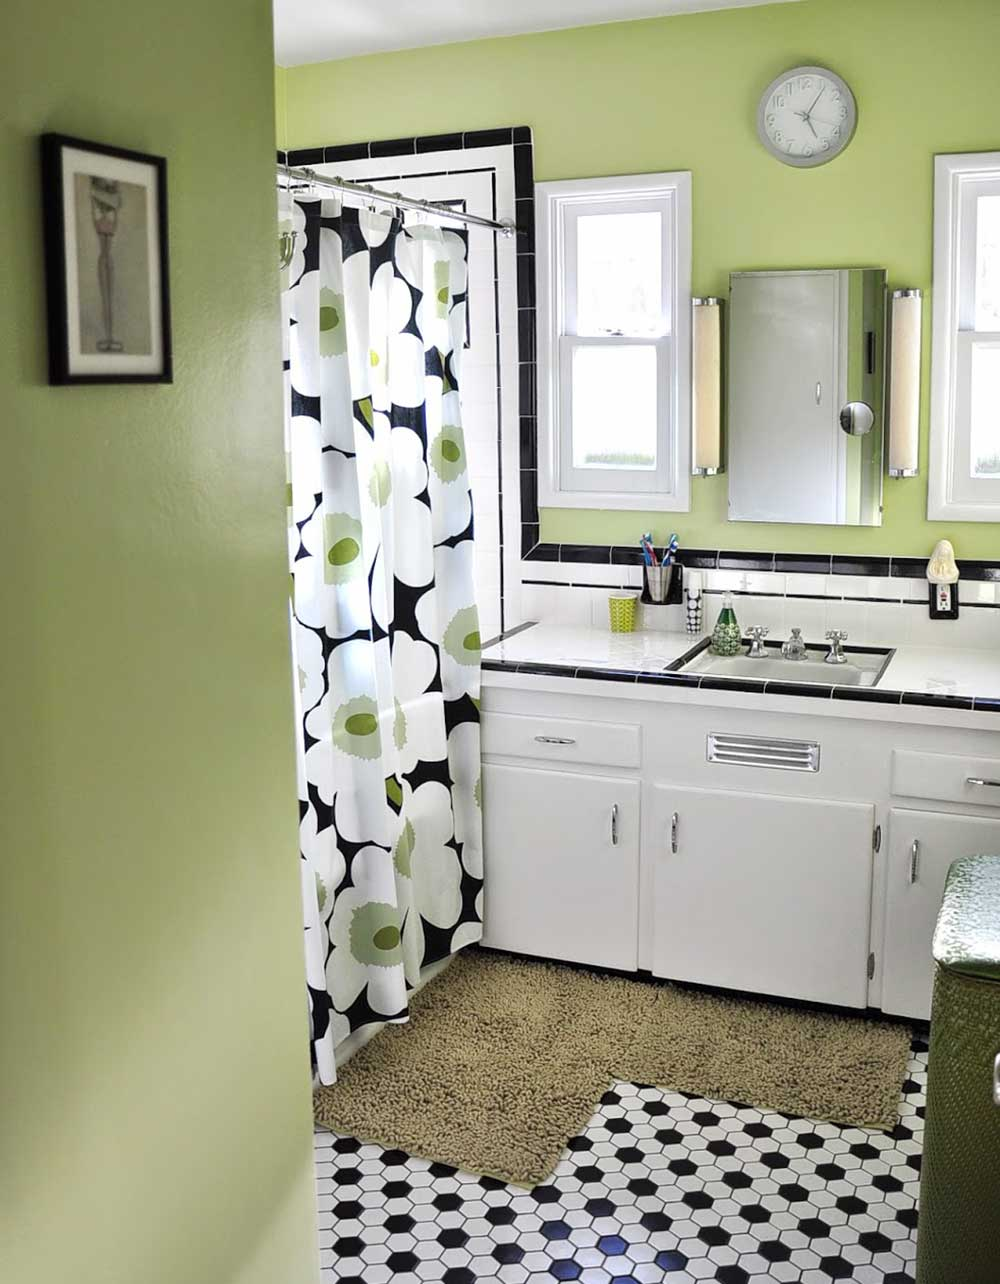 Vintage black and white bathroom ideas - Vintage Black And White Tile Bathroom